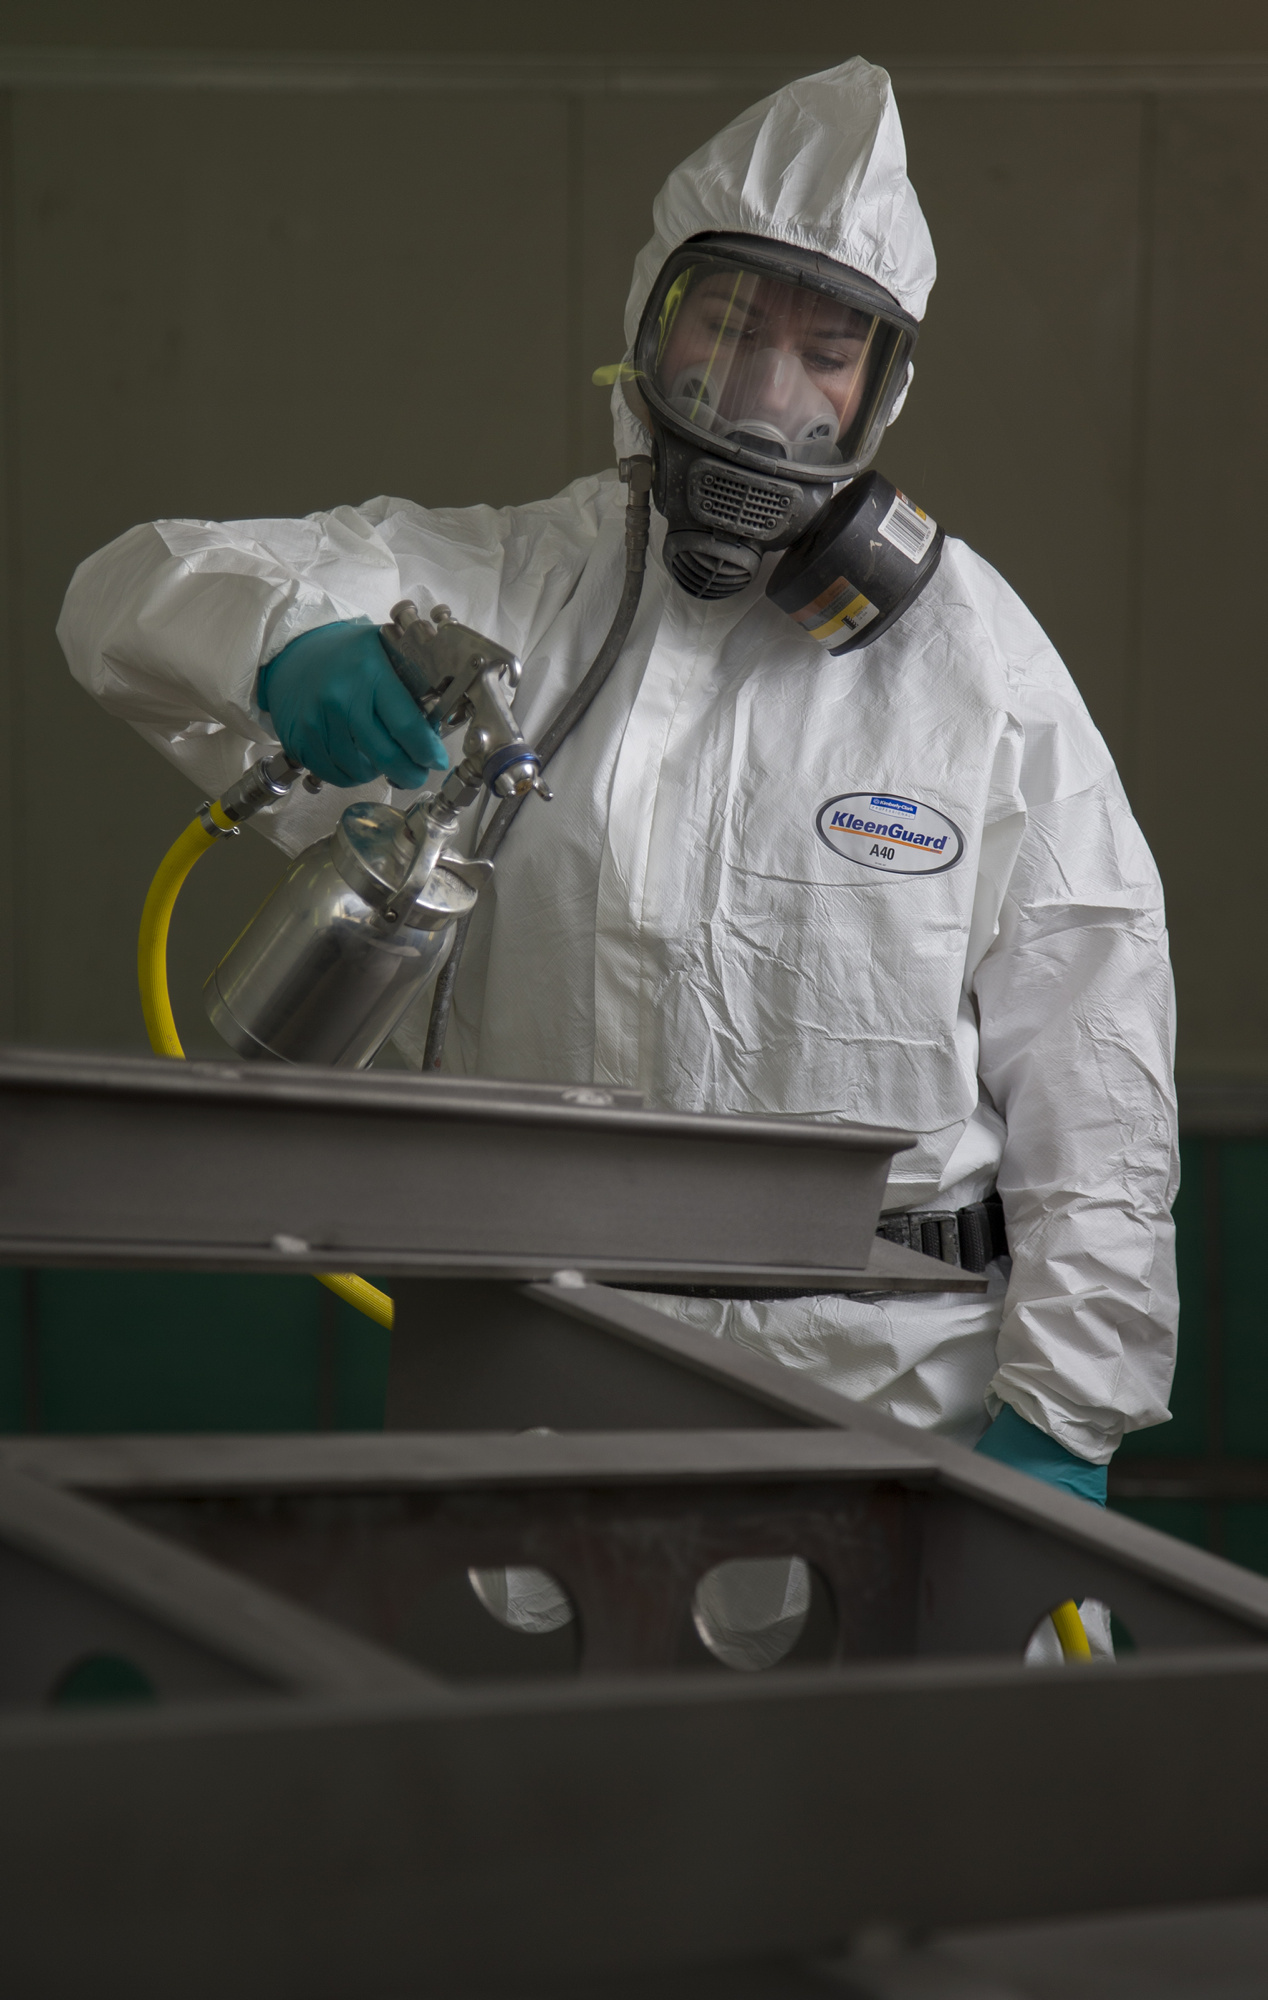 Seaman Boatswains Mate Georgia Christie prepares to paint a bilge keel in a spray booth that was transferred from the Air Force to the HMAS Stirling Fleet Support Unit's Corrosion Control section.